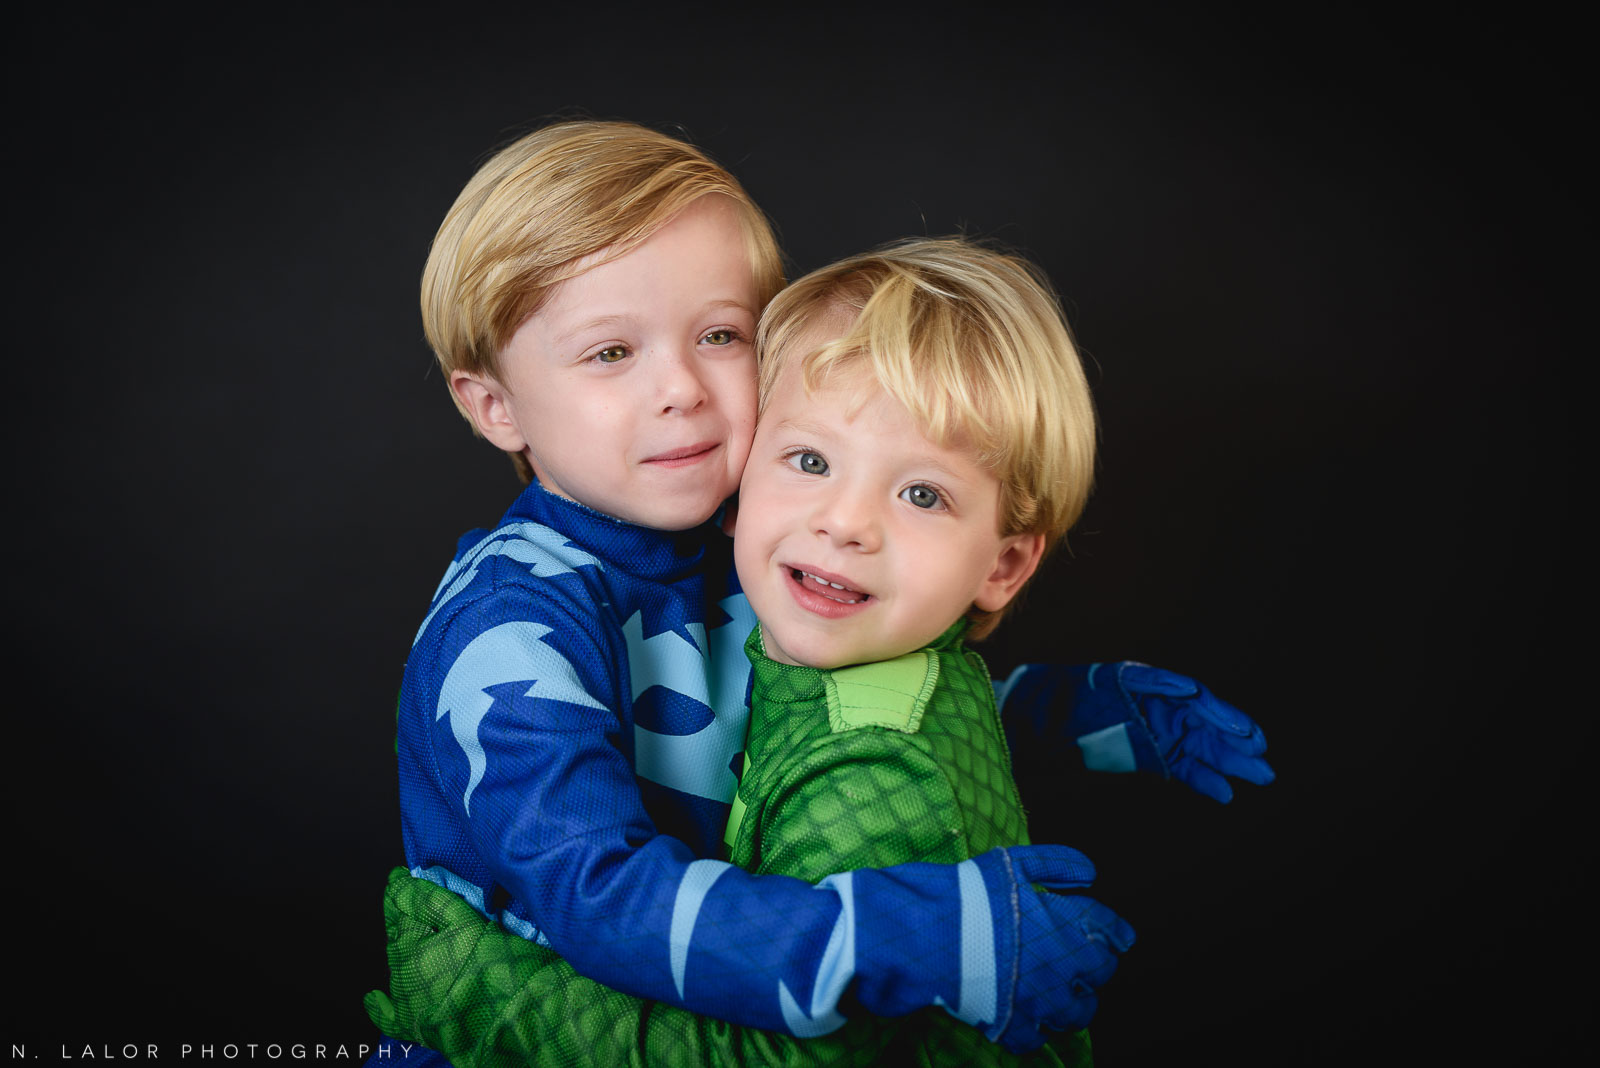 PJ Masks brothers. Kids Halloween costume portrait by N. Lalor Photography in Greenwich, Connecticut.